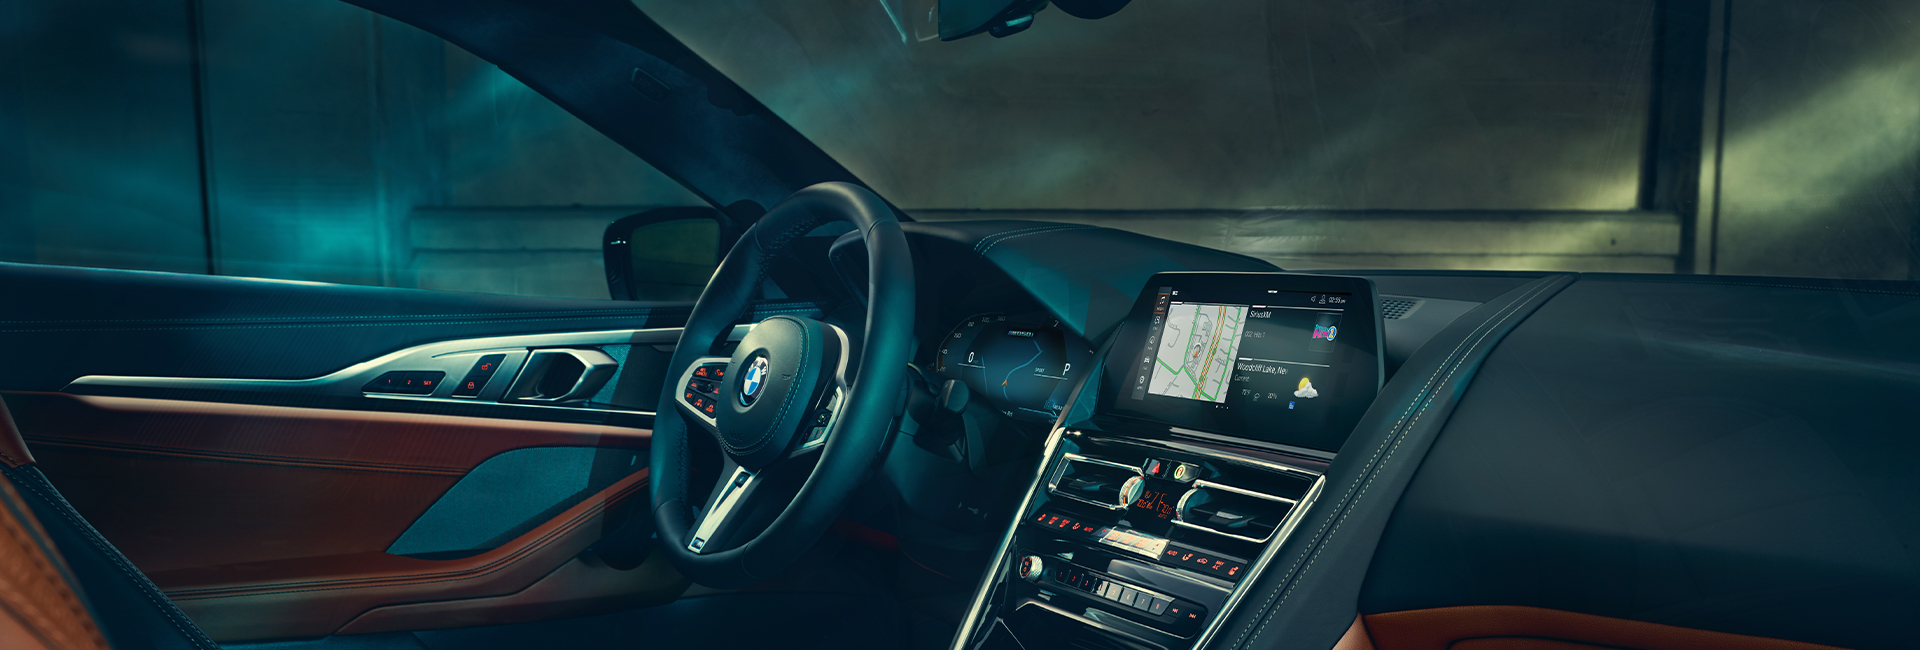 Interior image of the 2020 BMW 8 Series